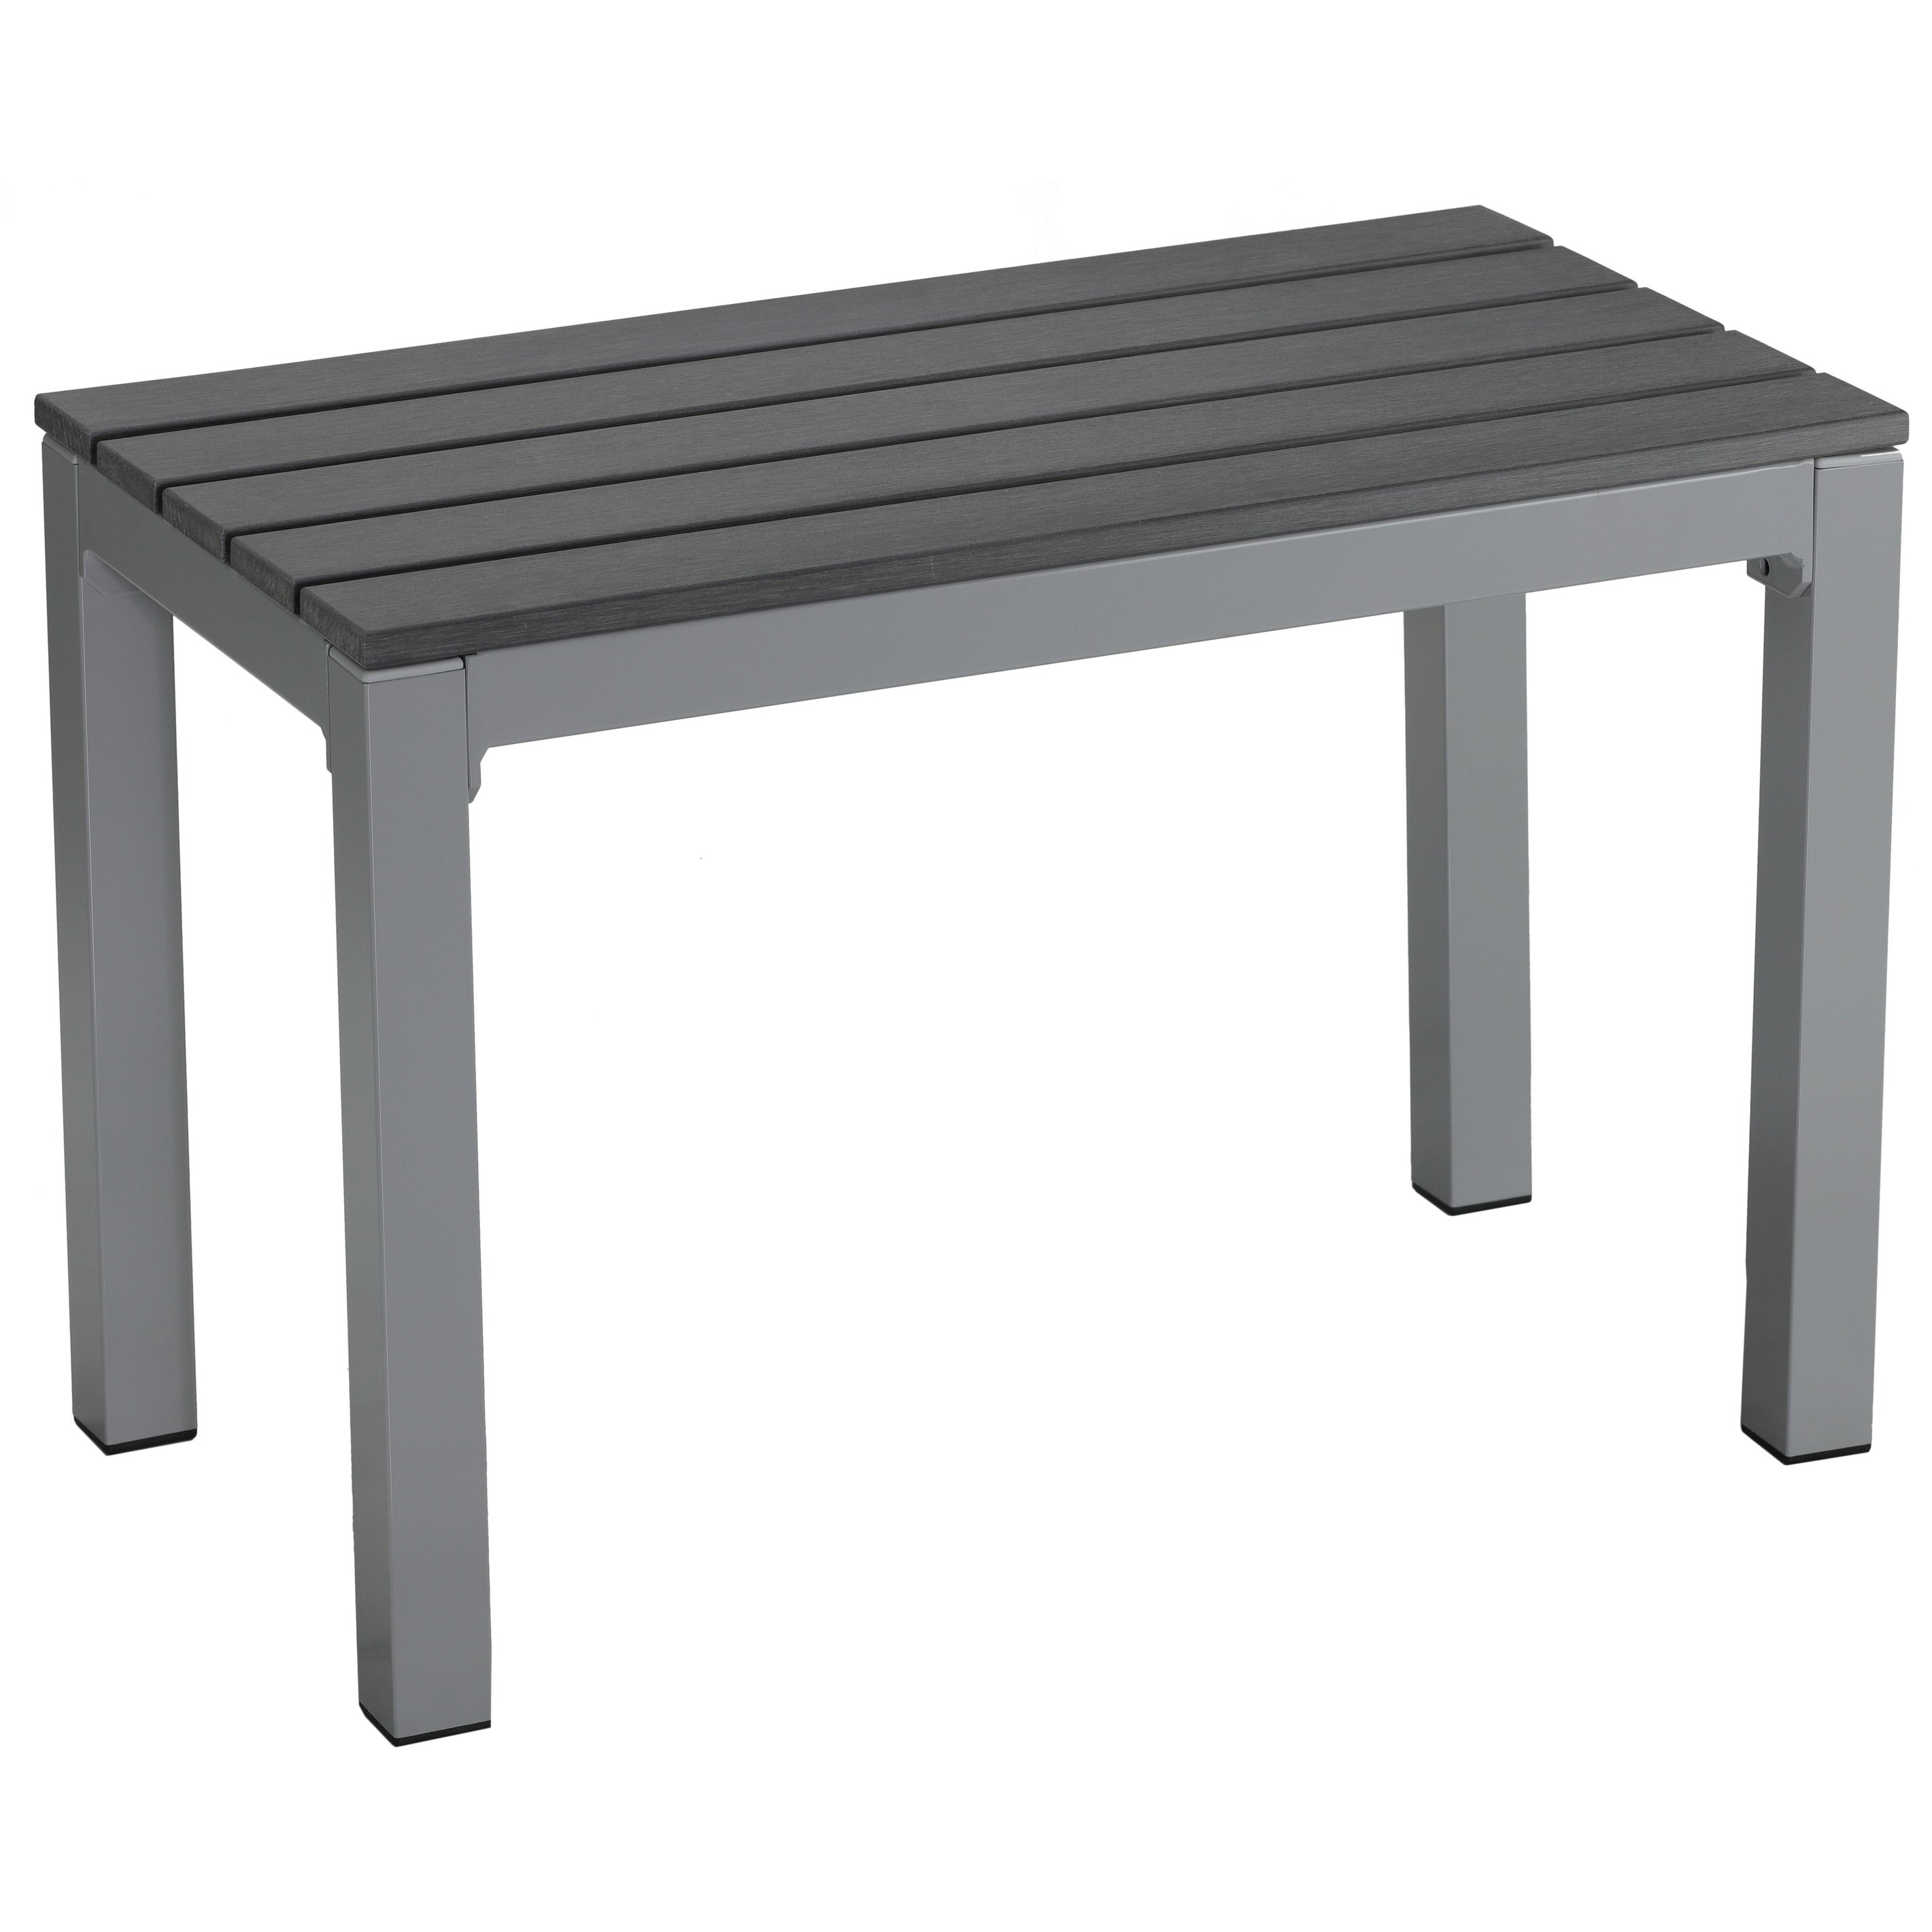 Shop Carbon Loft Linde Poly Resin Silver/slate Grey Aluminum Outdoor Pertaining To Recent Jaxon Grey 7 Piece Rectangle Extension Dining Sets With Wood Chairs (Image 14 of 20)